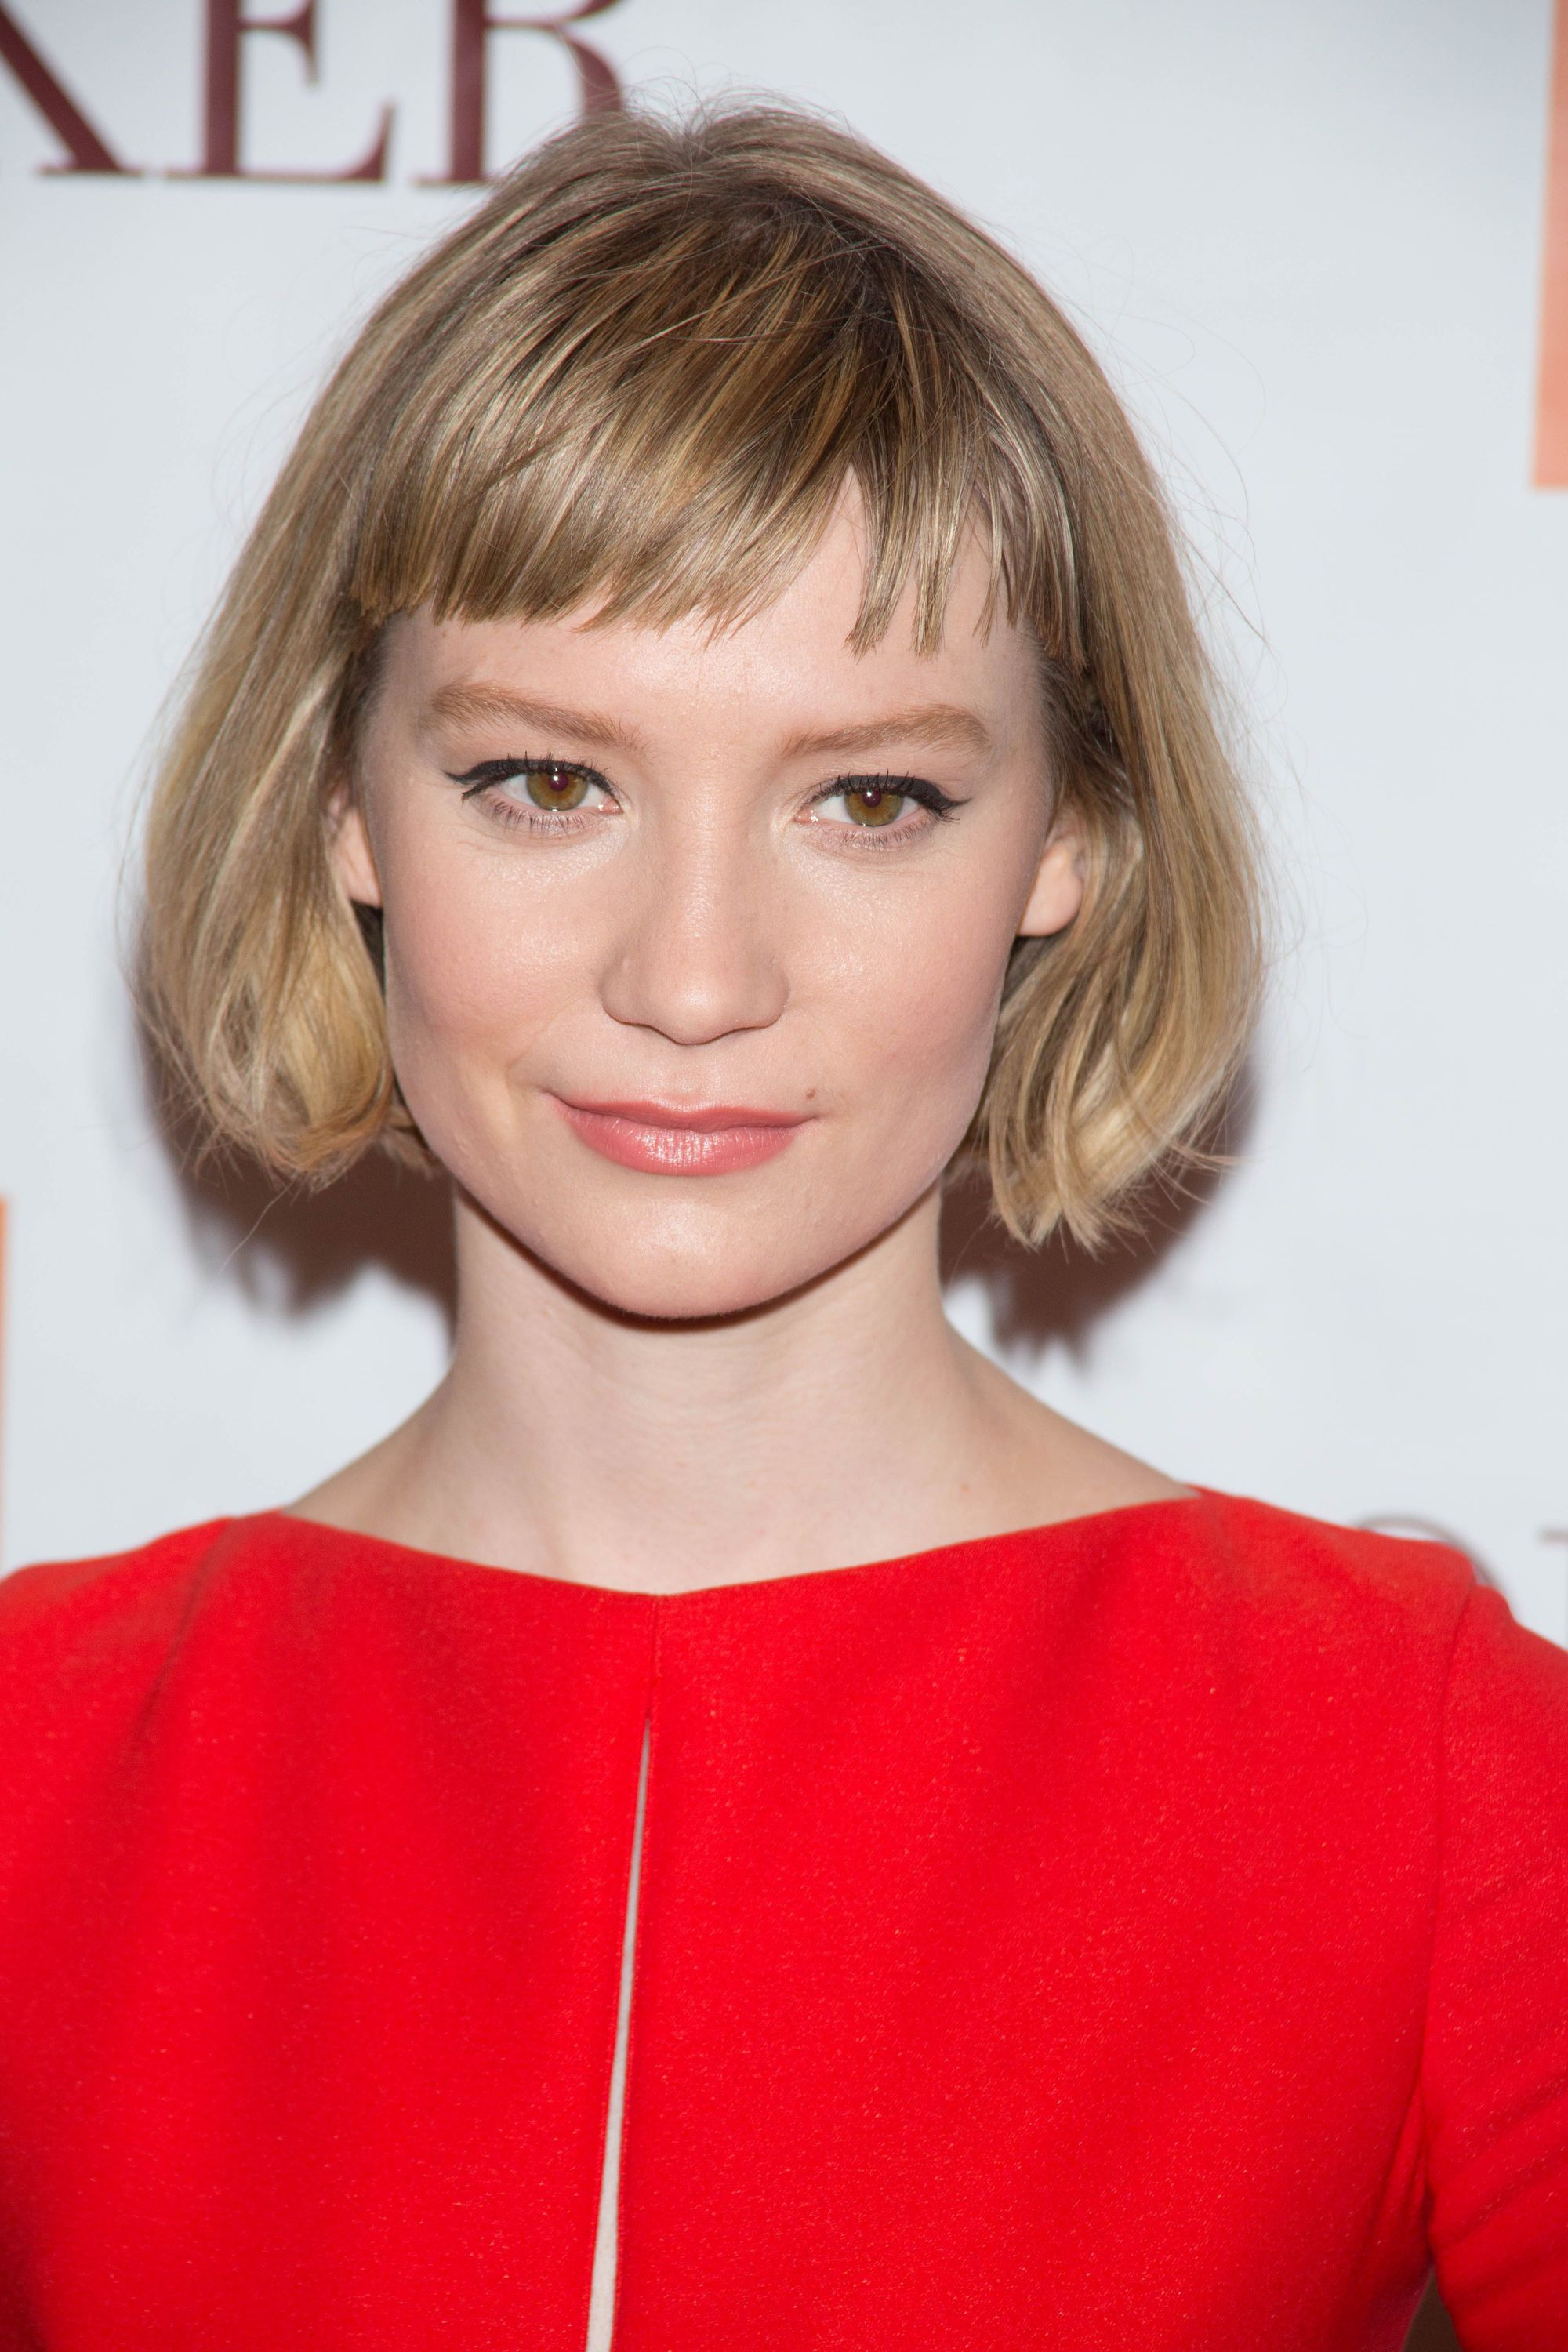 Mia Wasikowska Blonde Bob With Short Fringe